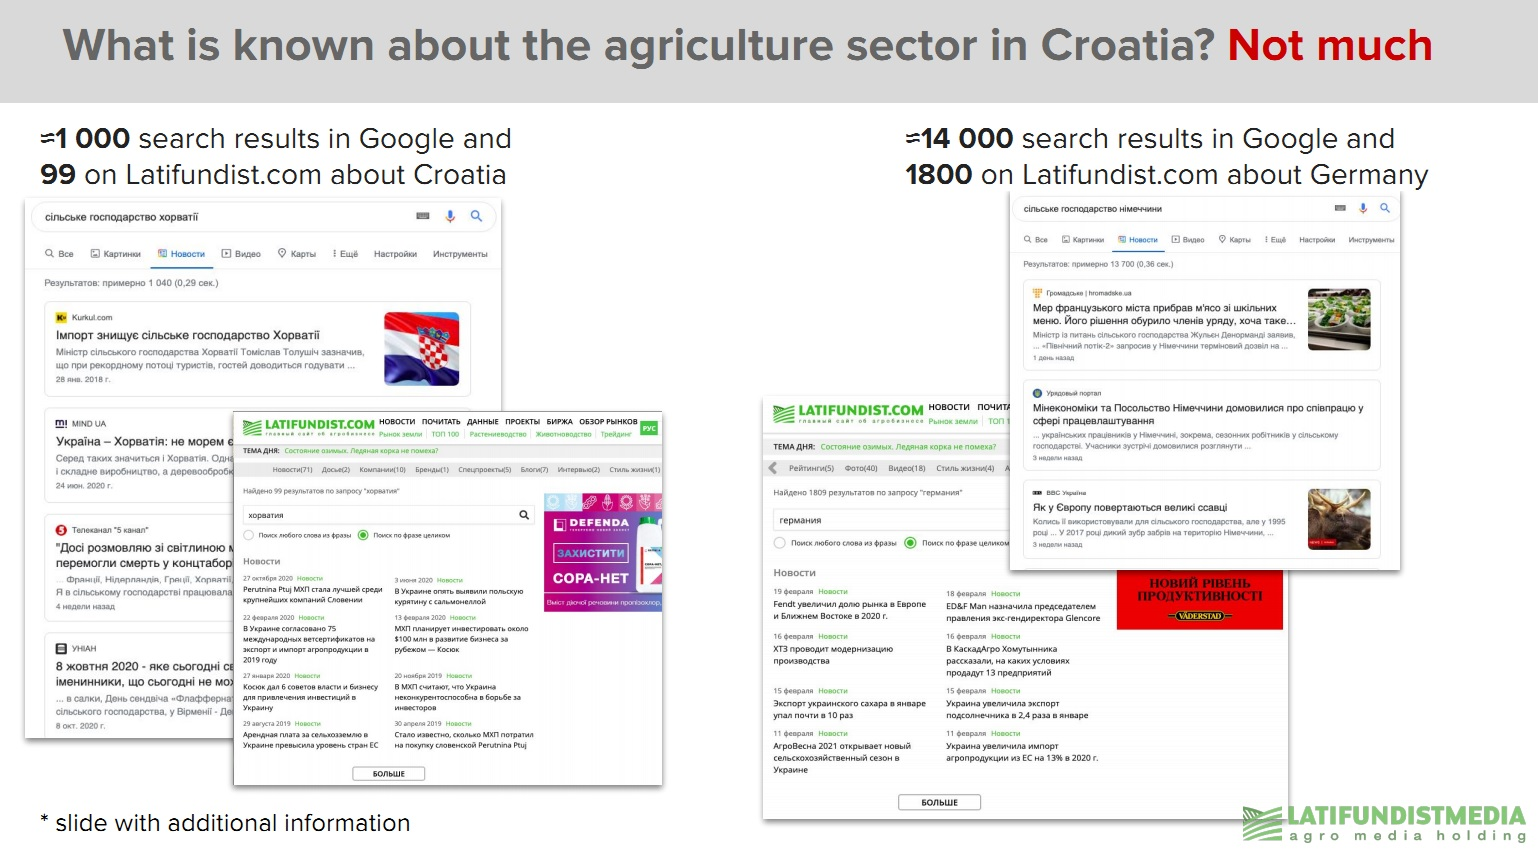 What is known about the agriculture sector in Croatia?